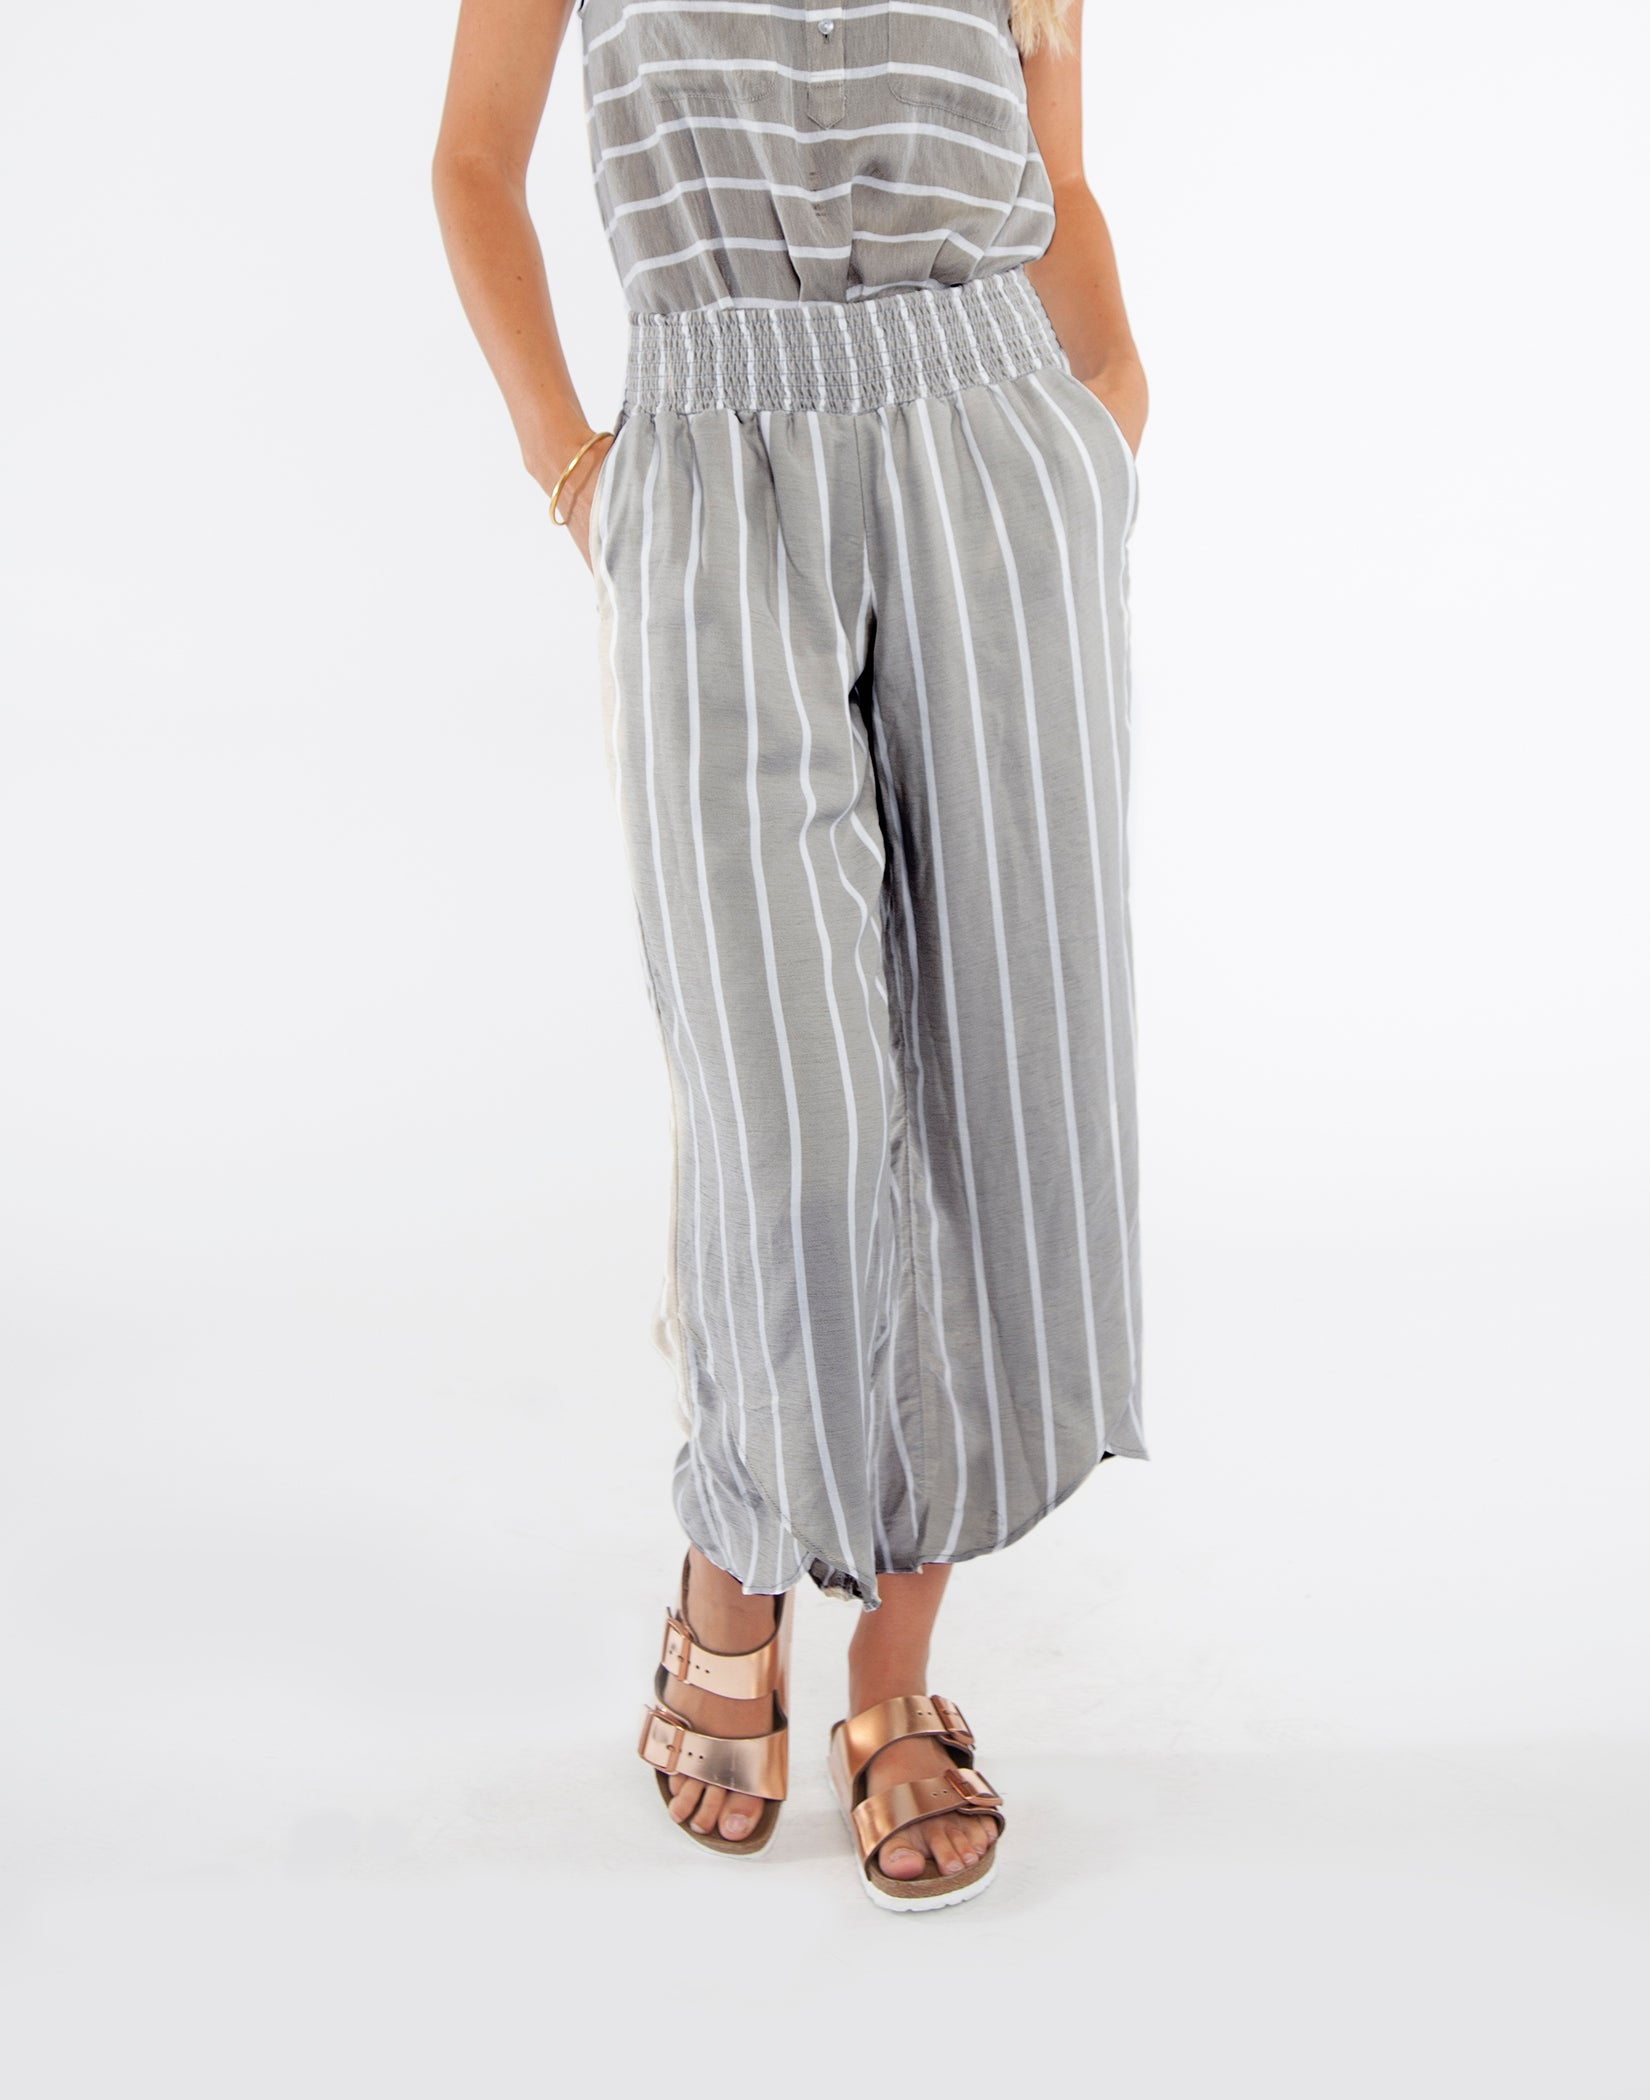 Everly Pant : Charcoal Heather